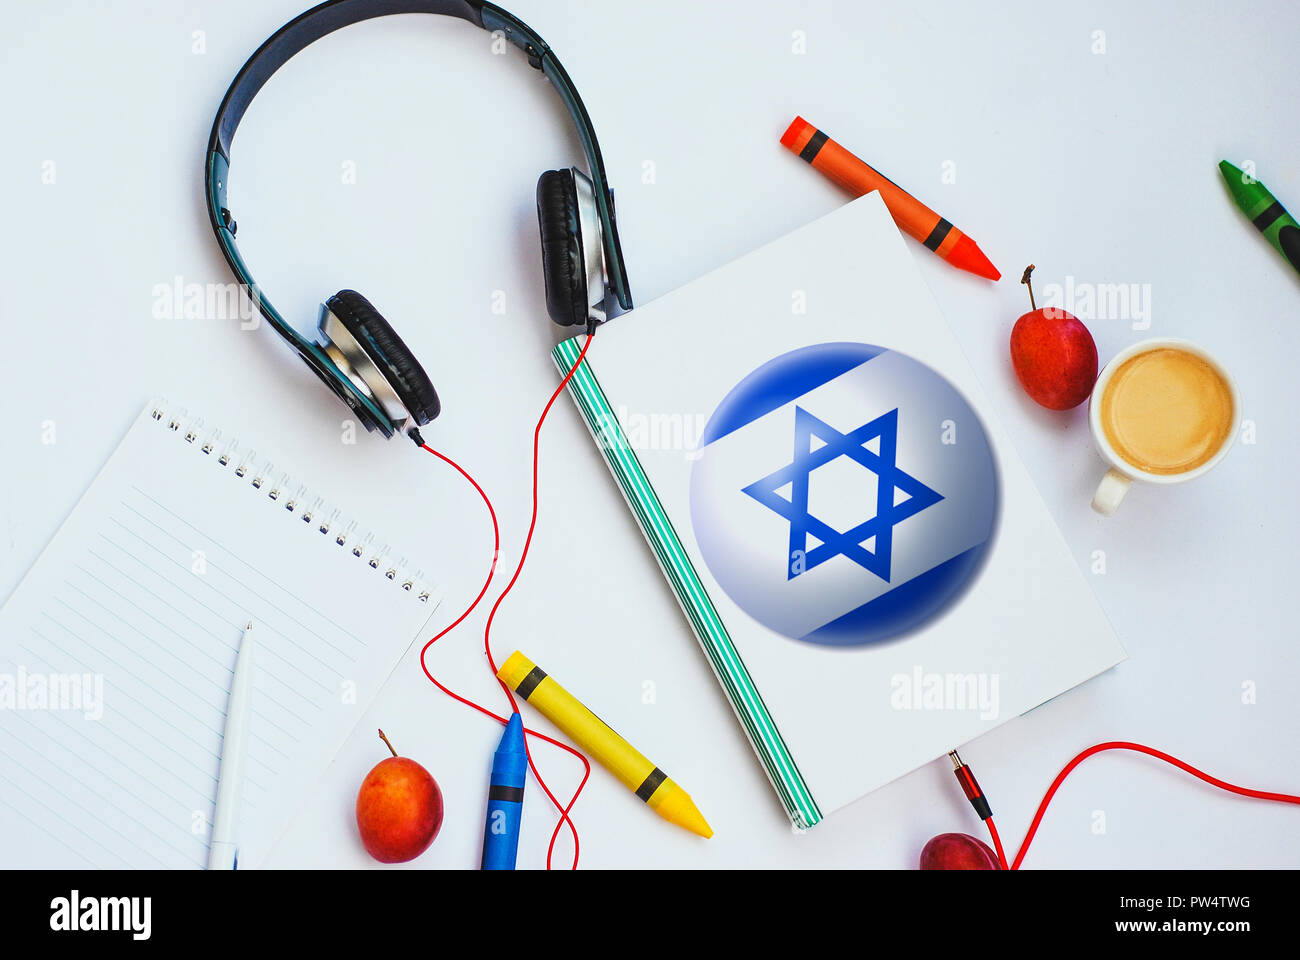 the book with Israel flag and headphones. concept of Hebrew learning through audio courses - Stock Image